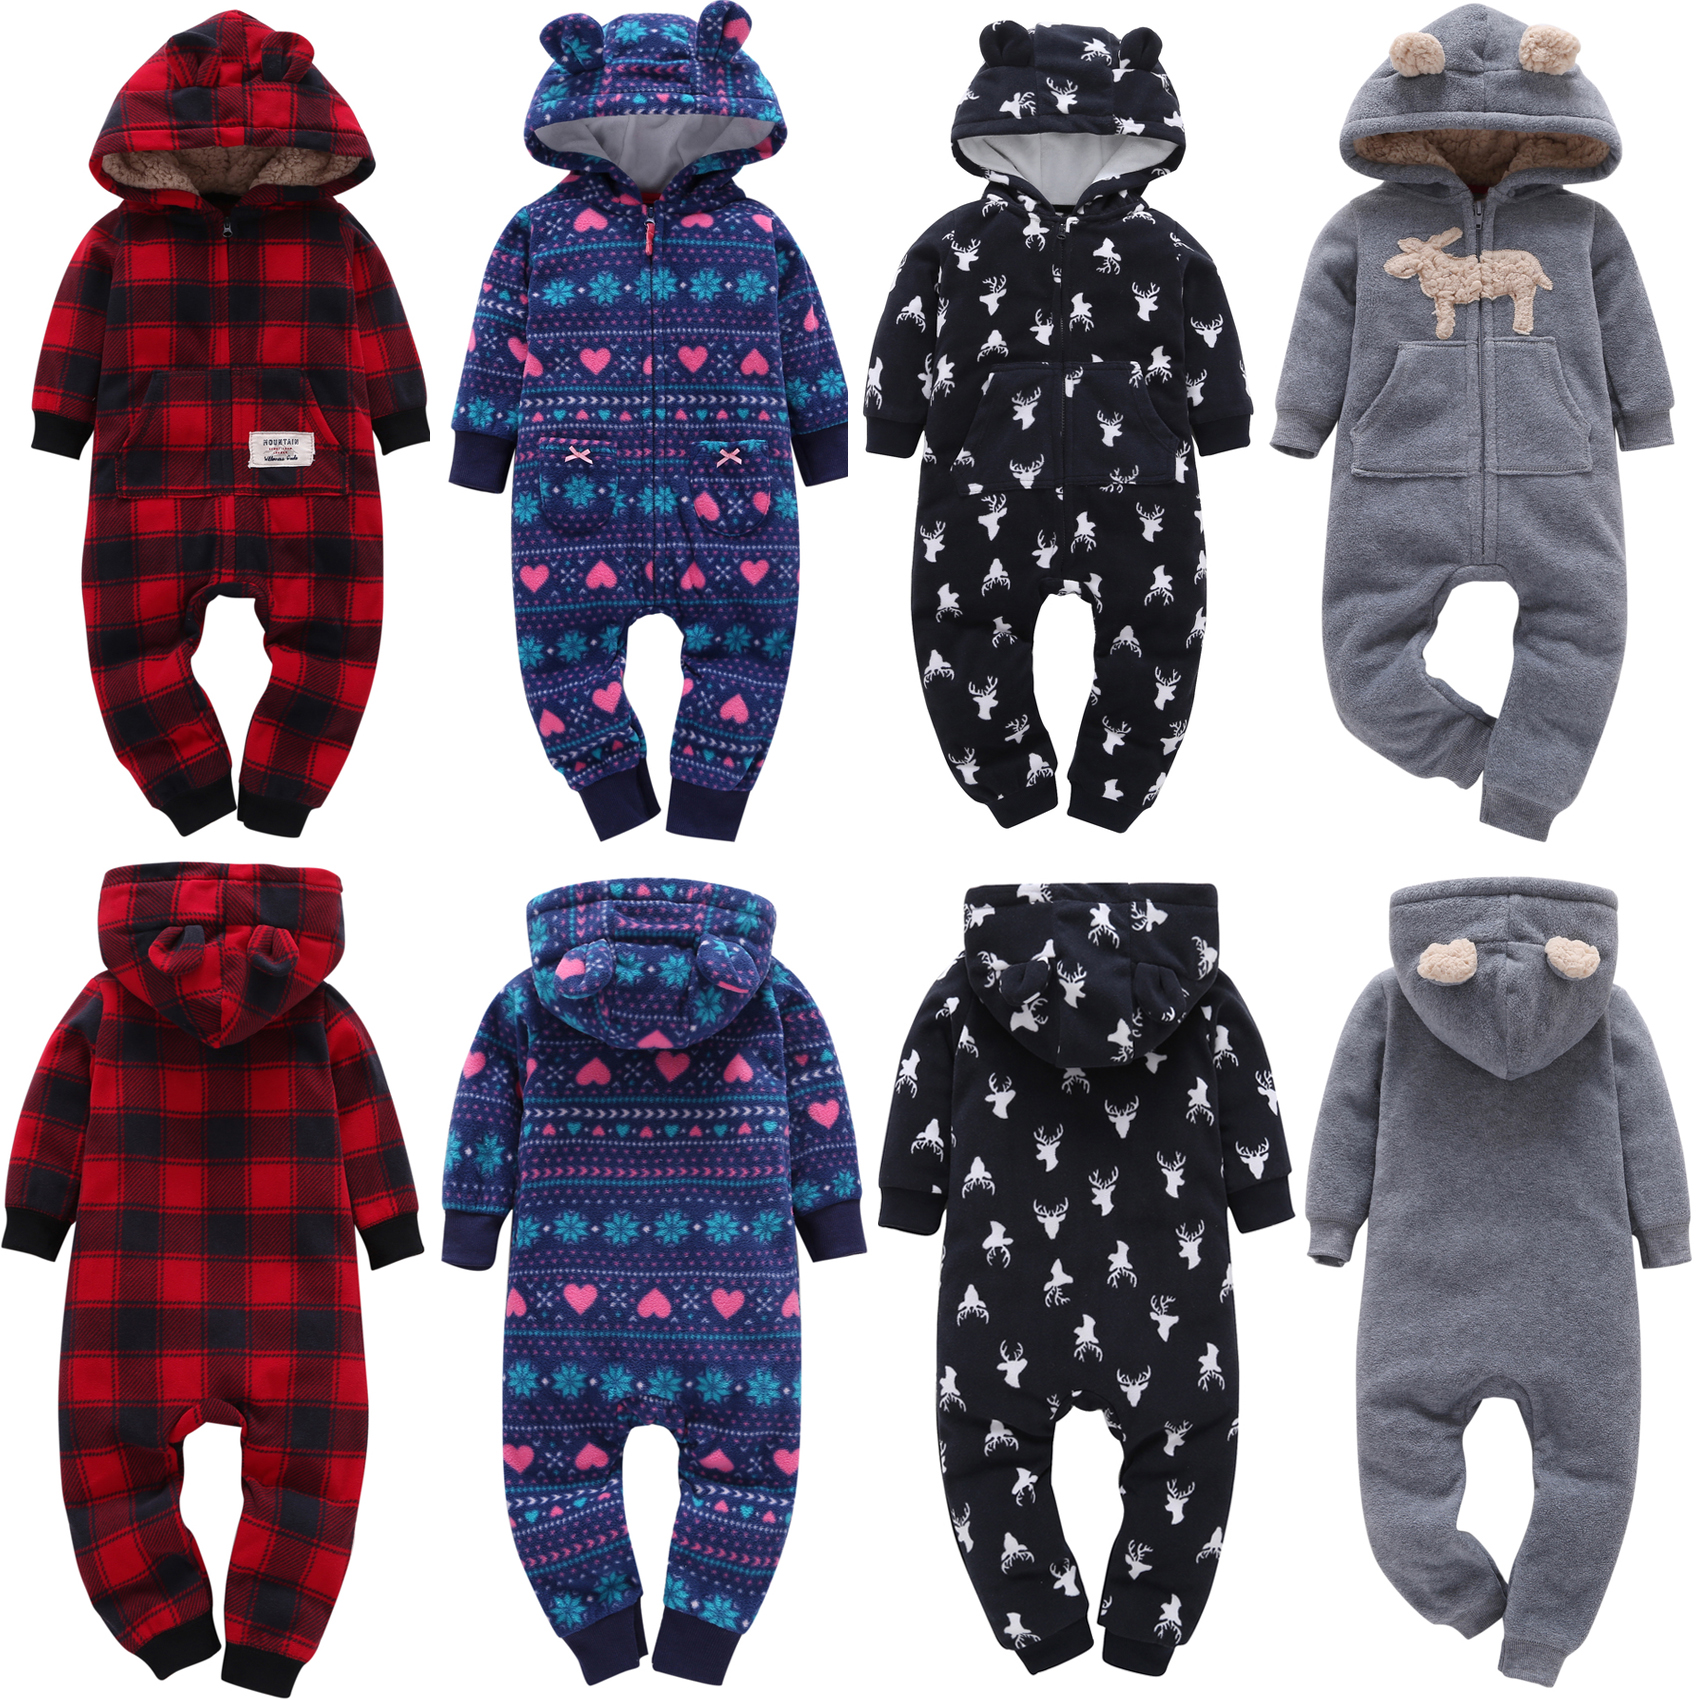 Pudcoco New Born Baby Clothes Winter Warm   Romper   Jumpsuits Cute Rabbit Ears   Rompers   Cartoon Christmas Clothes Hooded Wool Outfit